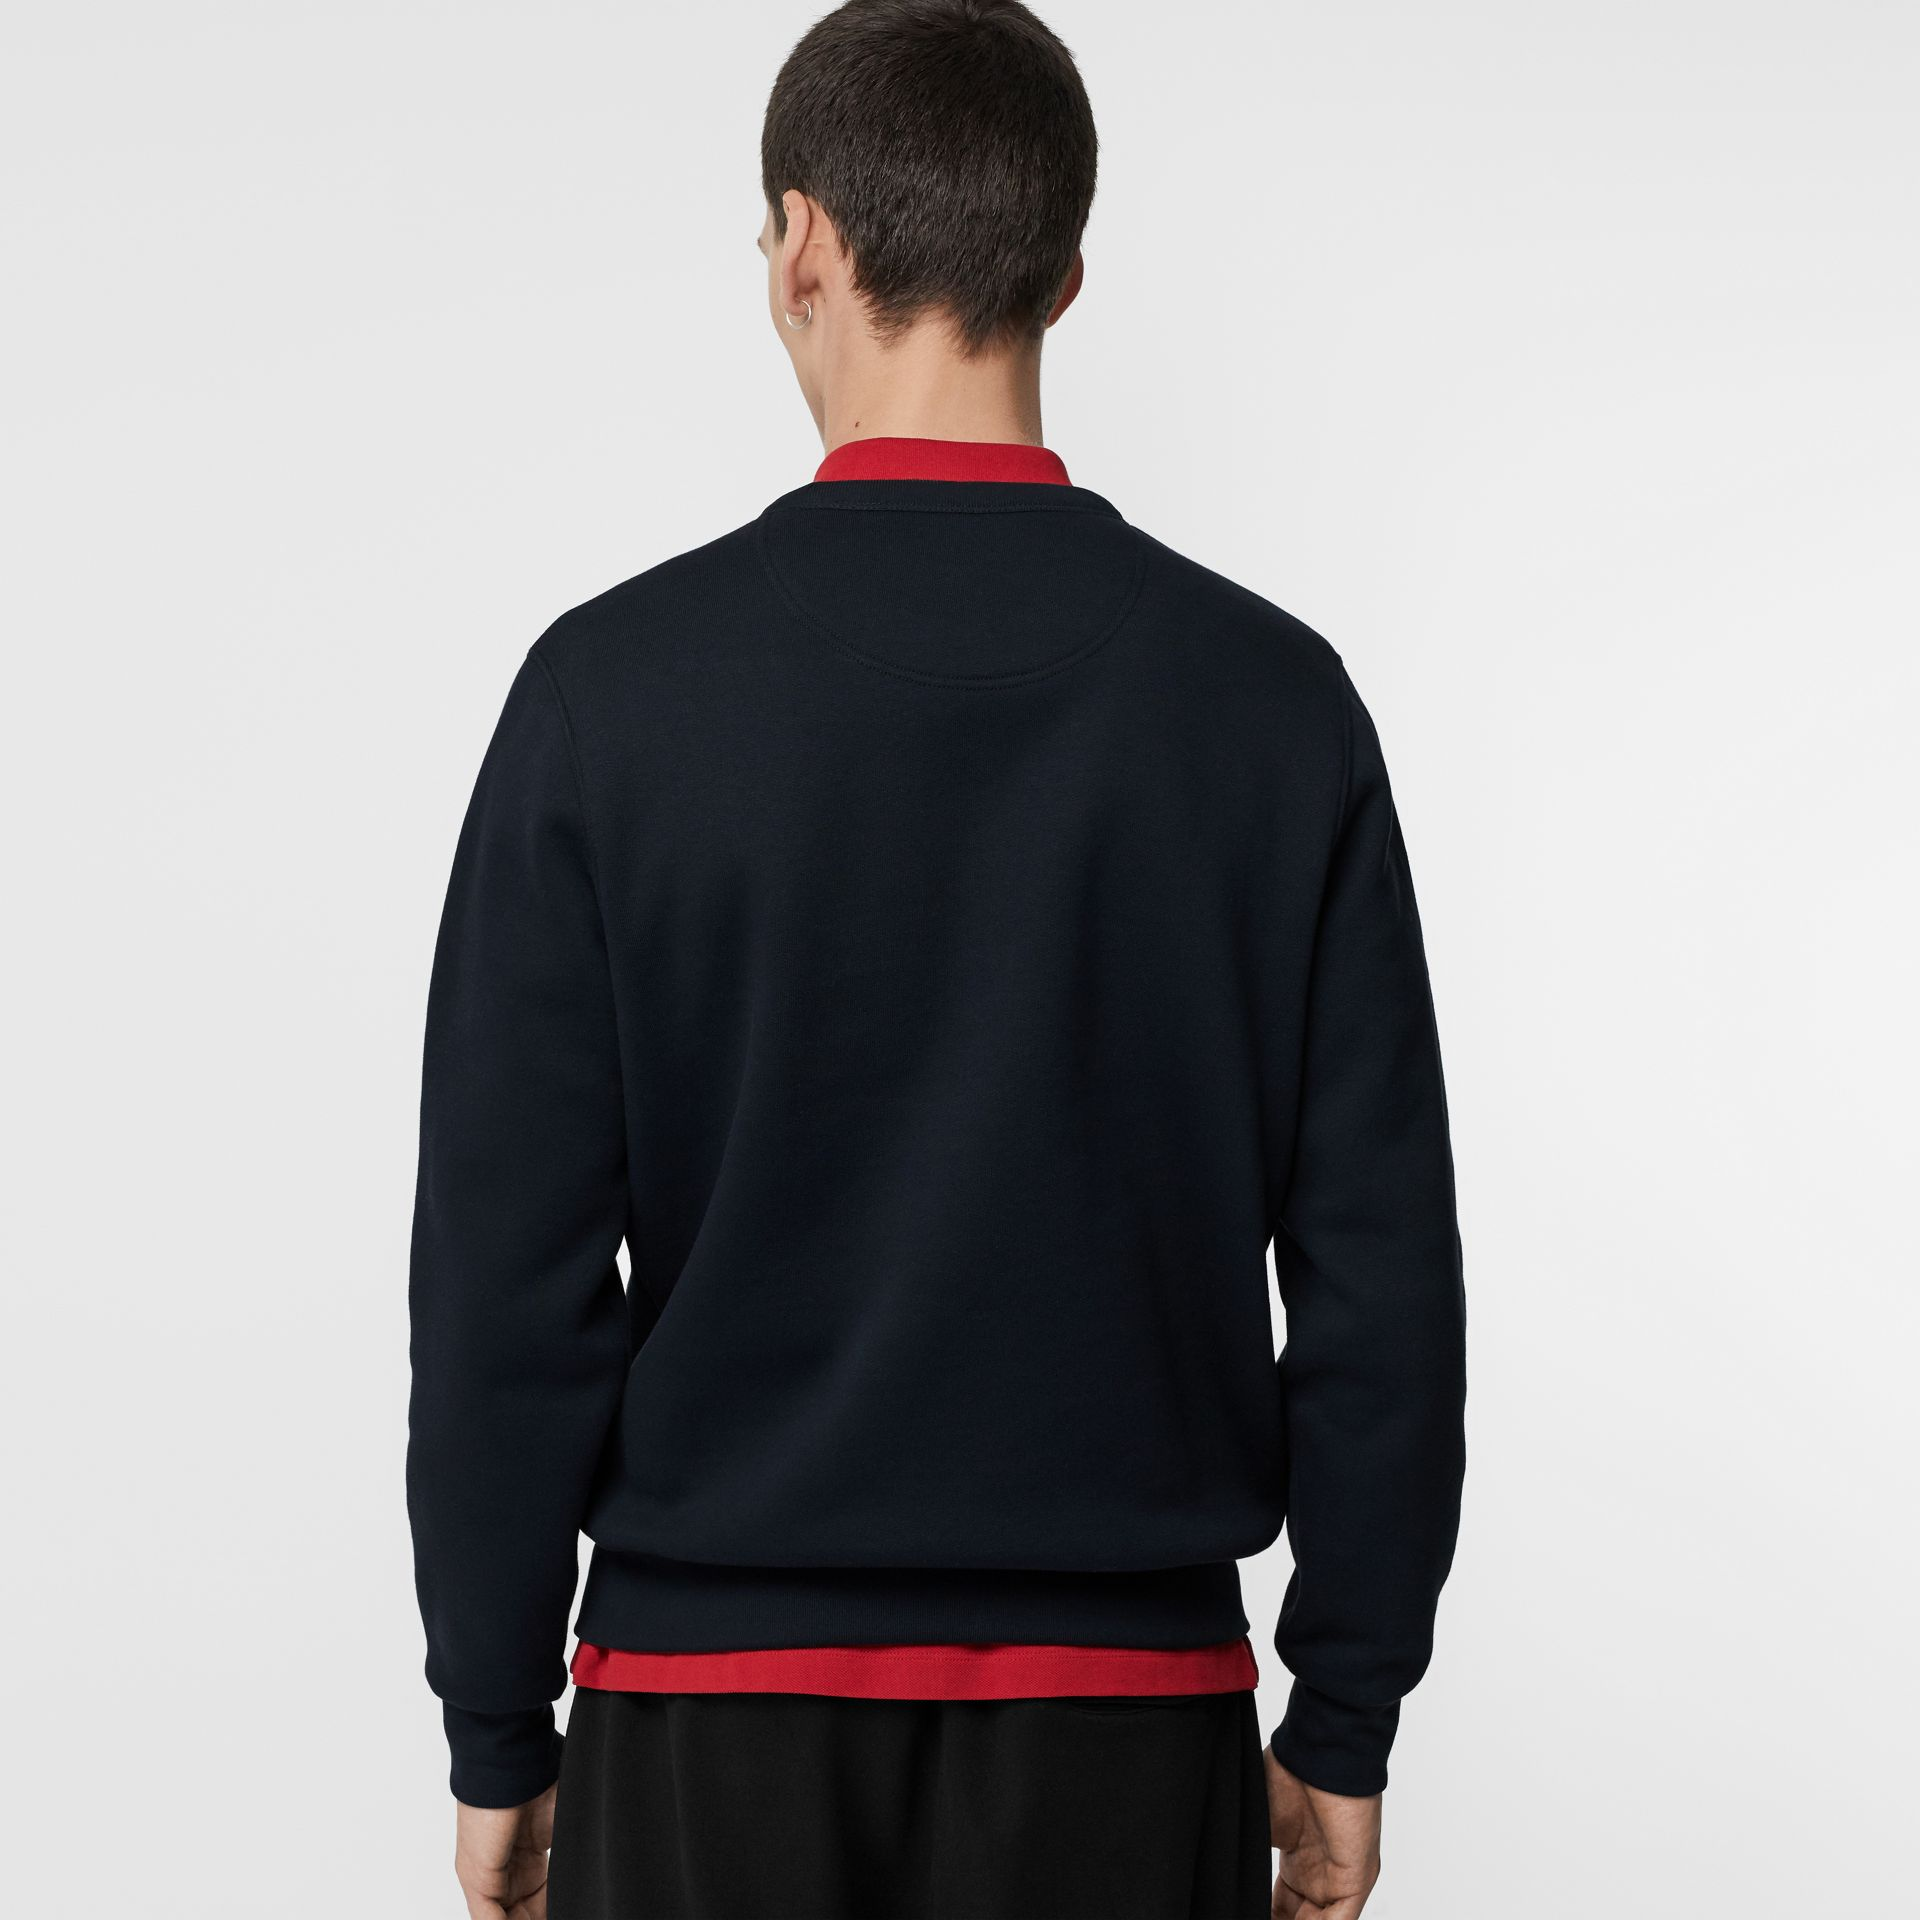 Sweat-shirt en jersey avec écusson brodé (Marine) - Homme | Burberry - photo de la galerie 2